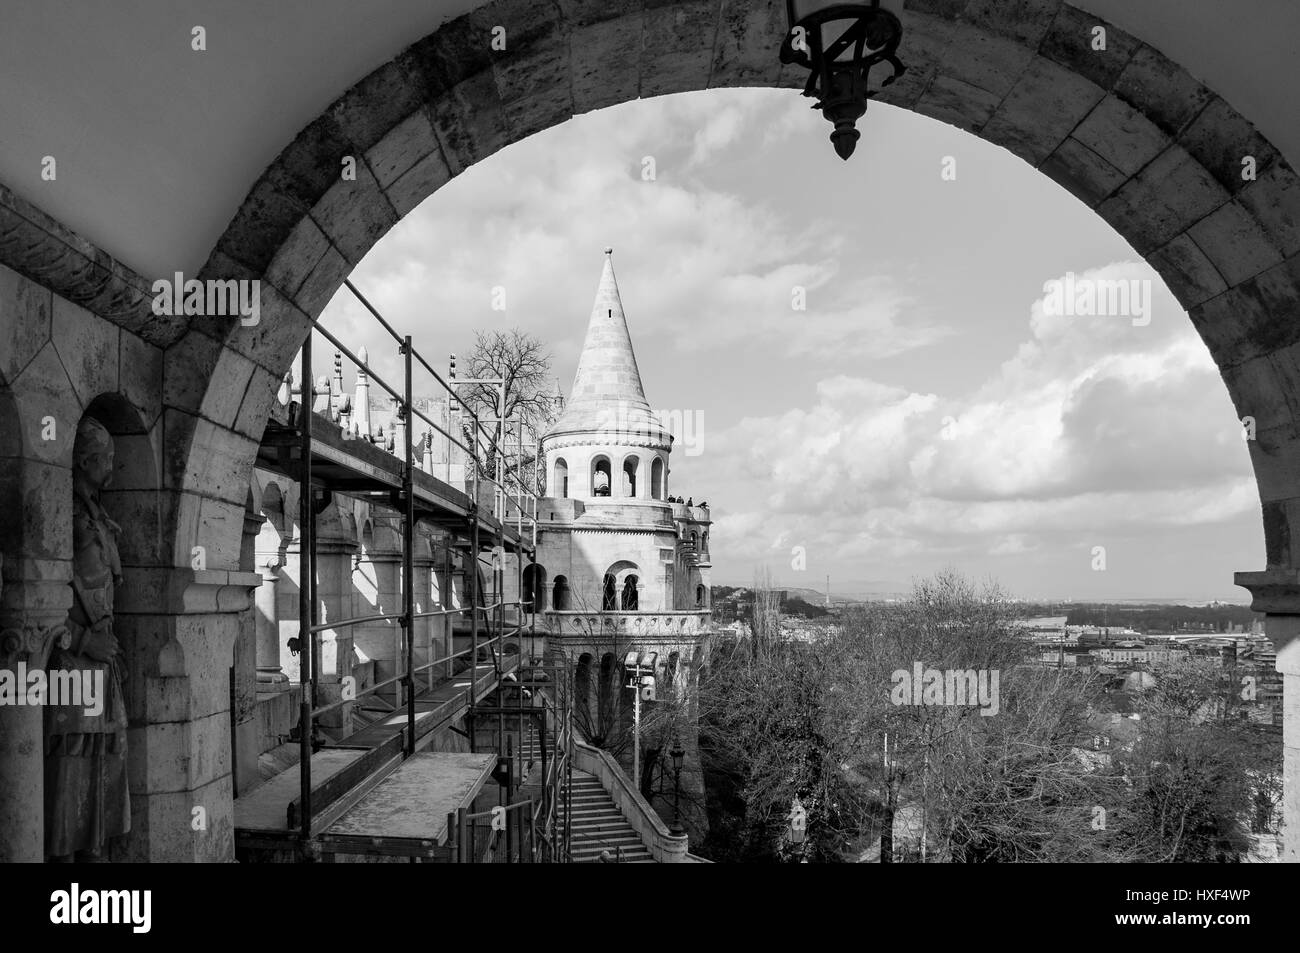 BUDAPEST, HUNGARY - FEBRUARY 20, 2016: Fisherman's Castle is a terrace in neo-Gothic and neo-Romanesque style - Stock Image